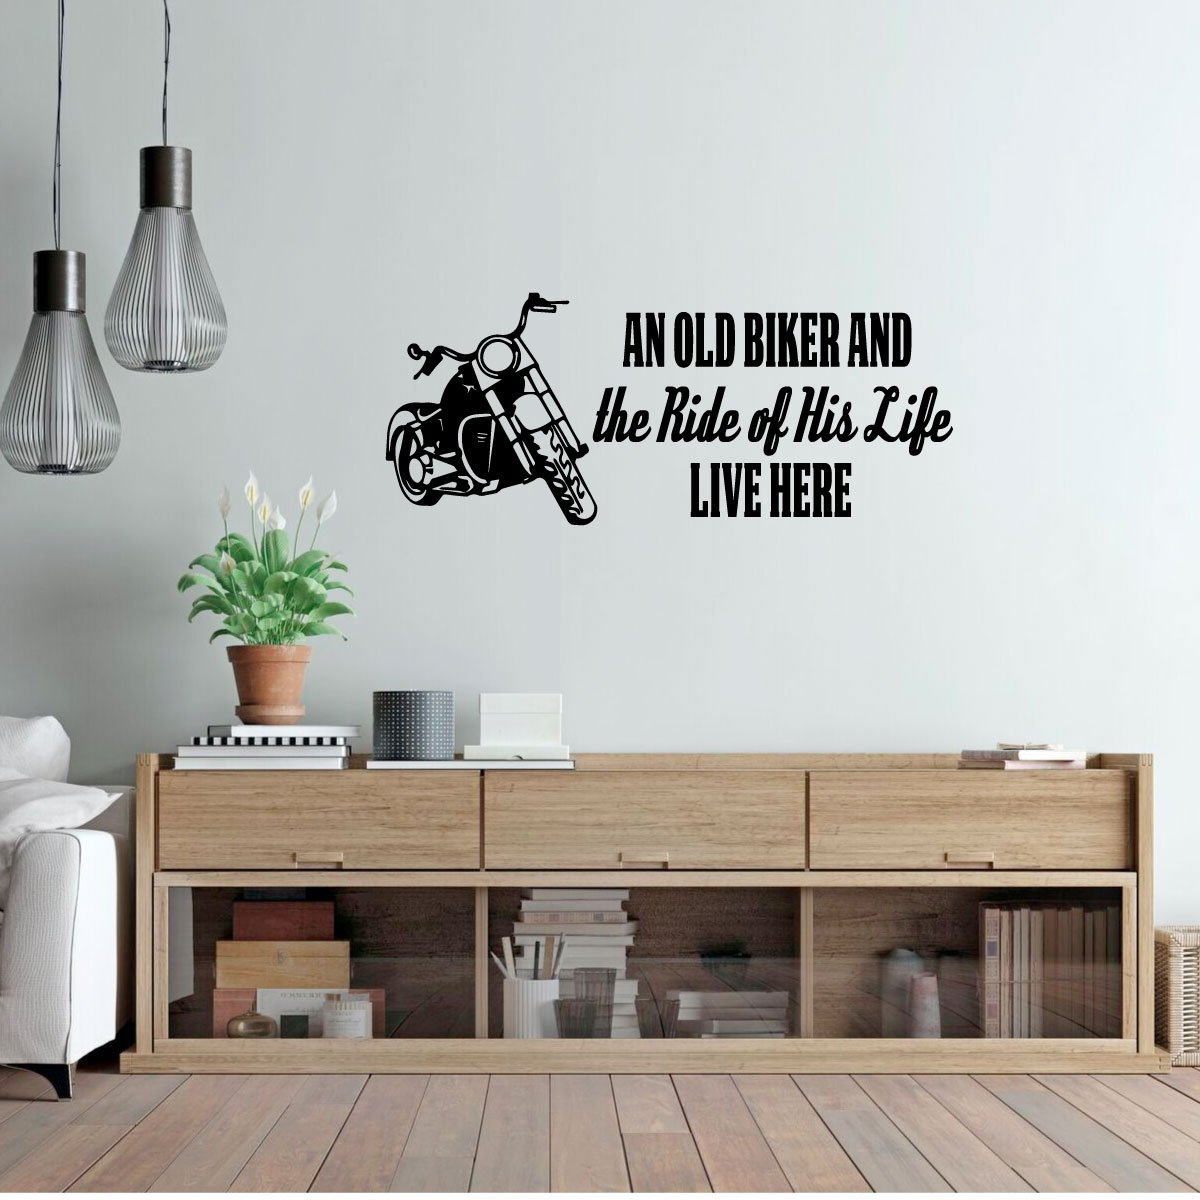 Biker Grandpa Gifts Vinyl Decal Home Decor Custom Vinyl Decor an Old Biker and The Ride of His Life with Motorcycle Image